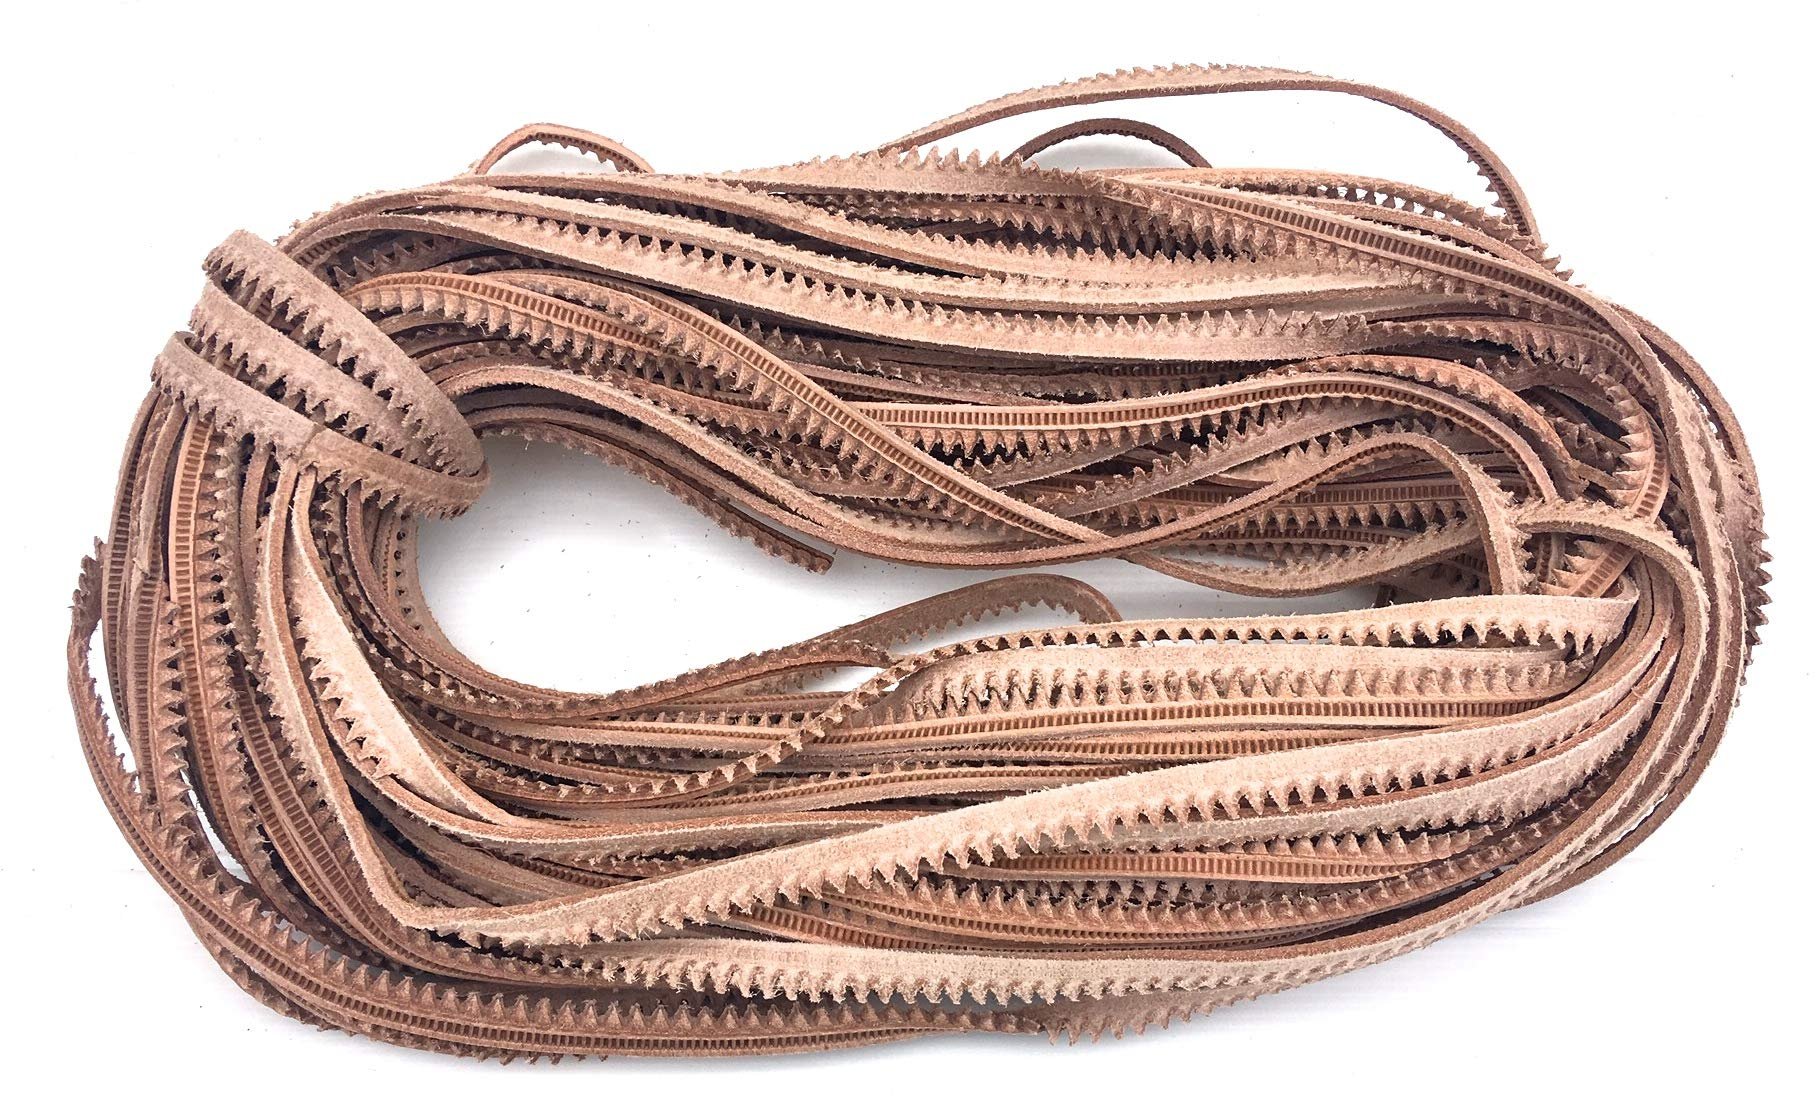 50 Meters of Decorative Veg Tan Leather Shoe Welt Cord for Shoemaking or Shoe Repair by TATYZ